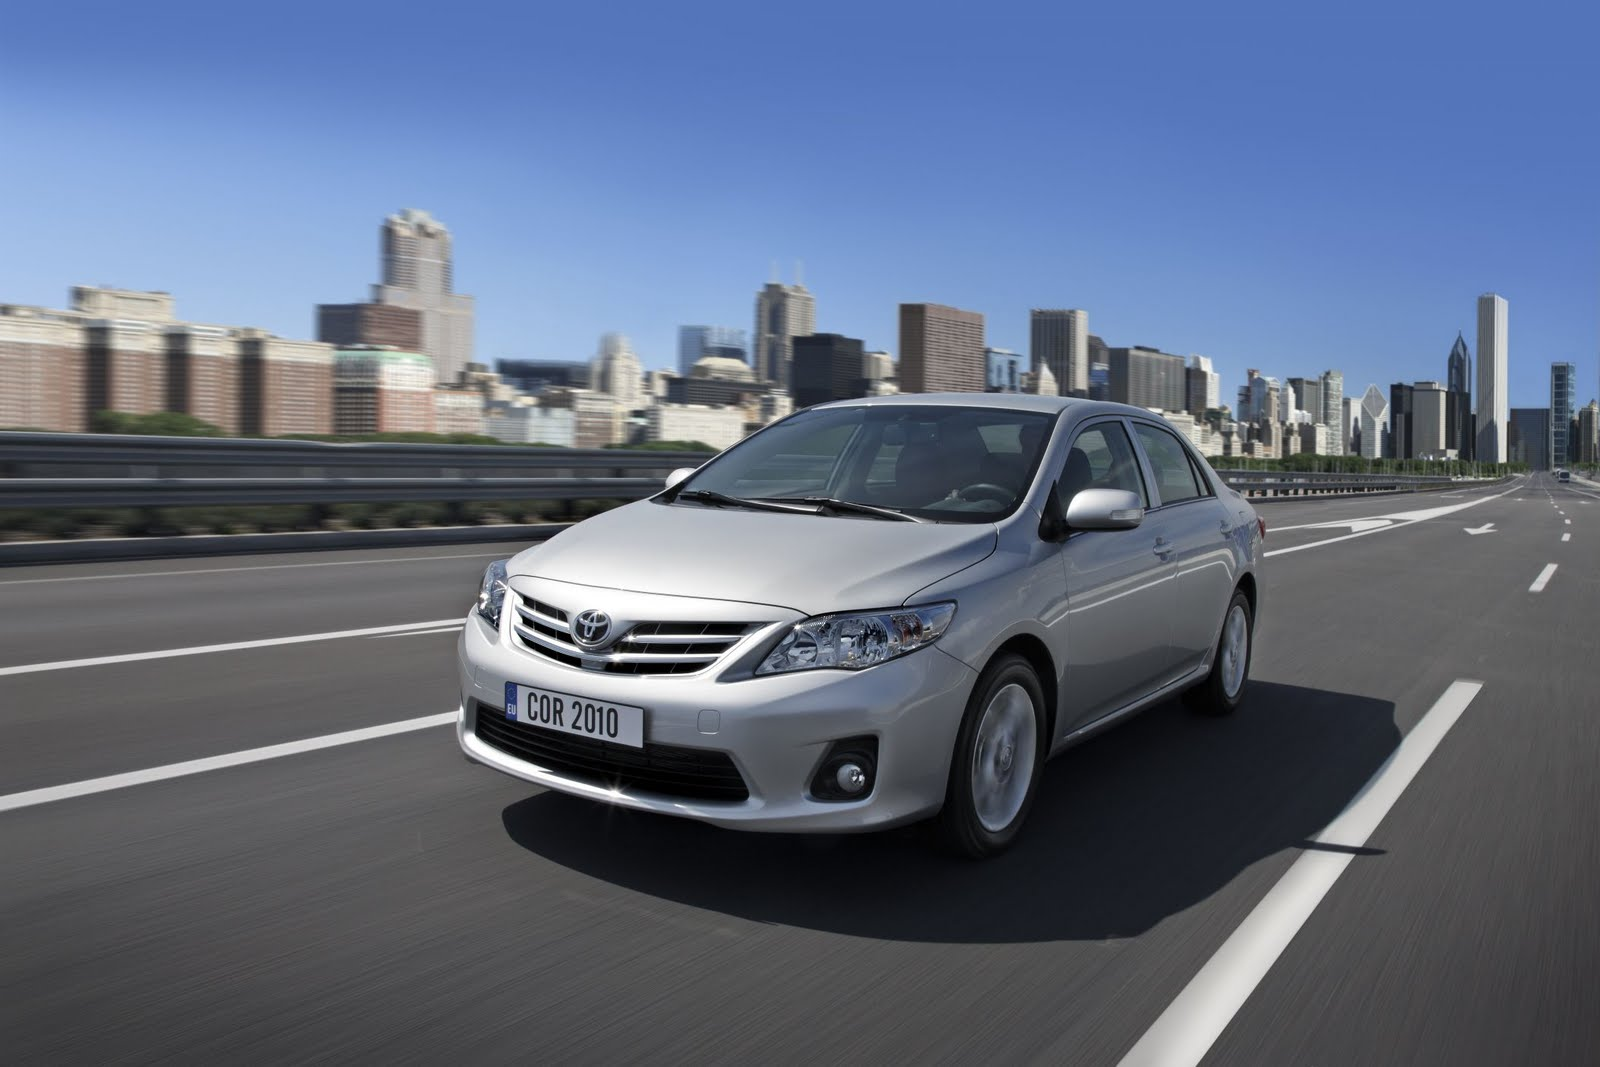 2012 toyota corolla best selling car in the world receives updated exterior and interior